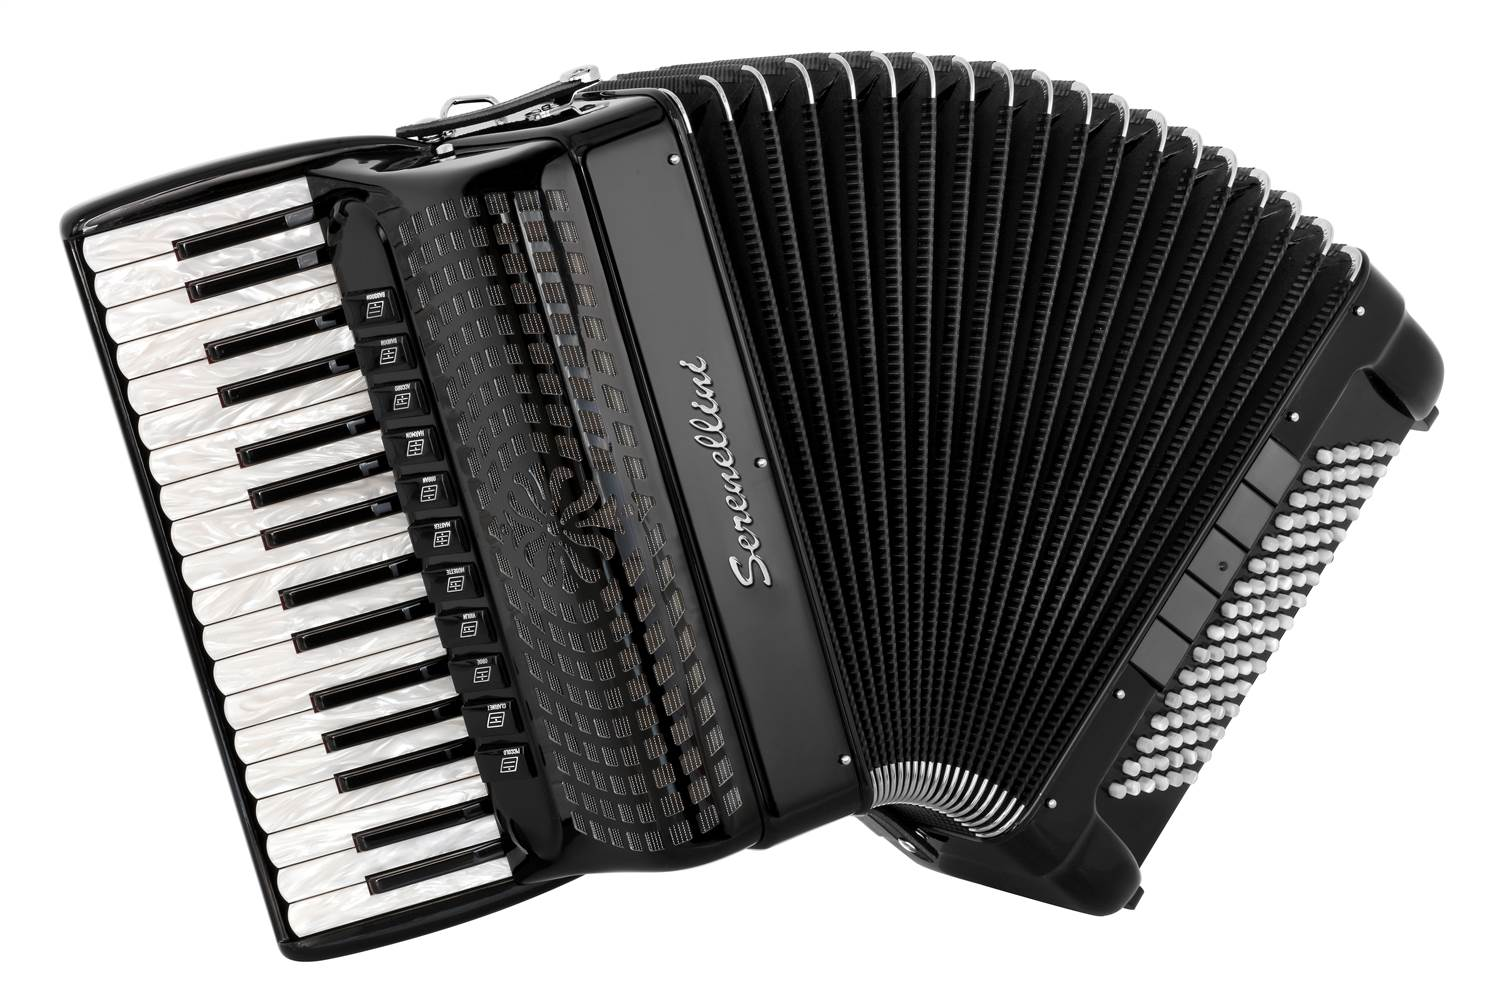 Serenellini 344 piano accordion